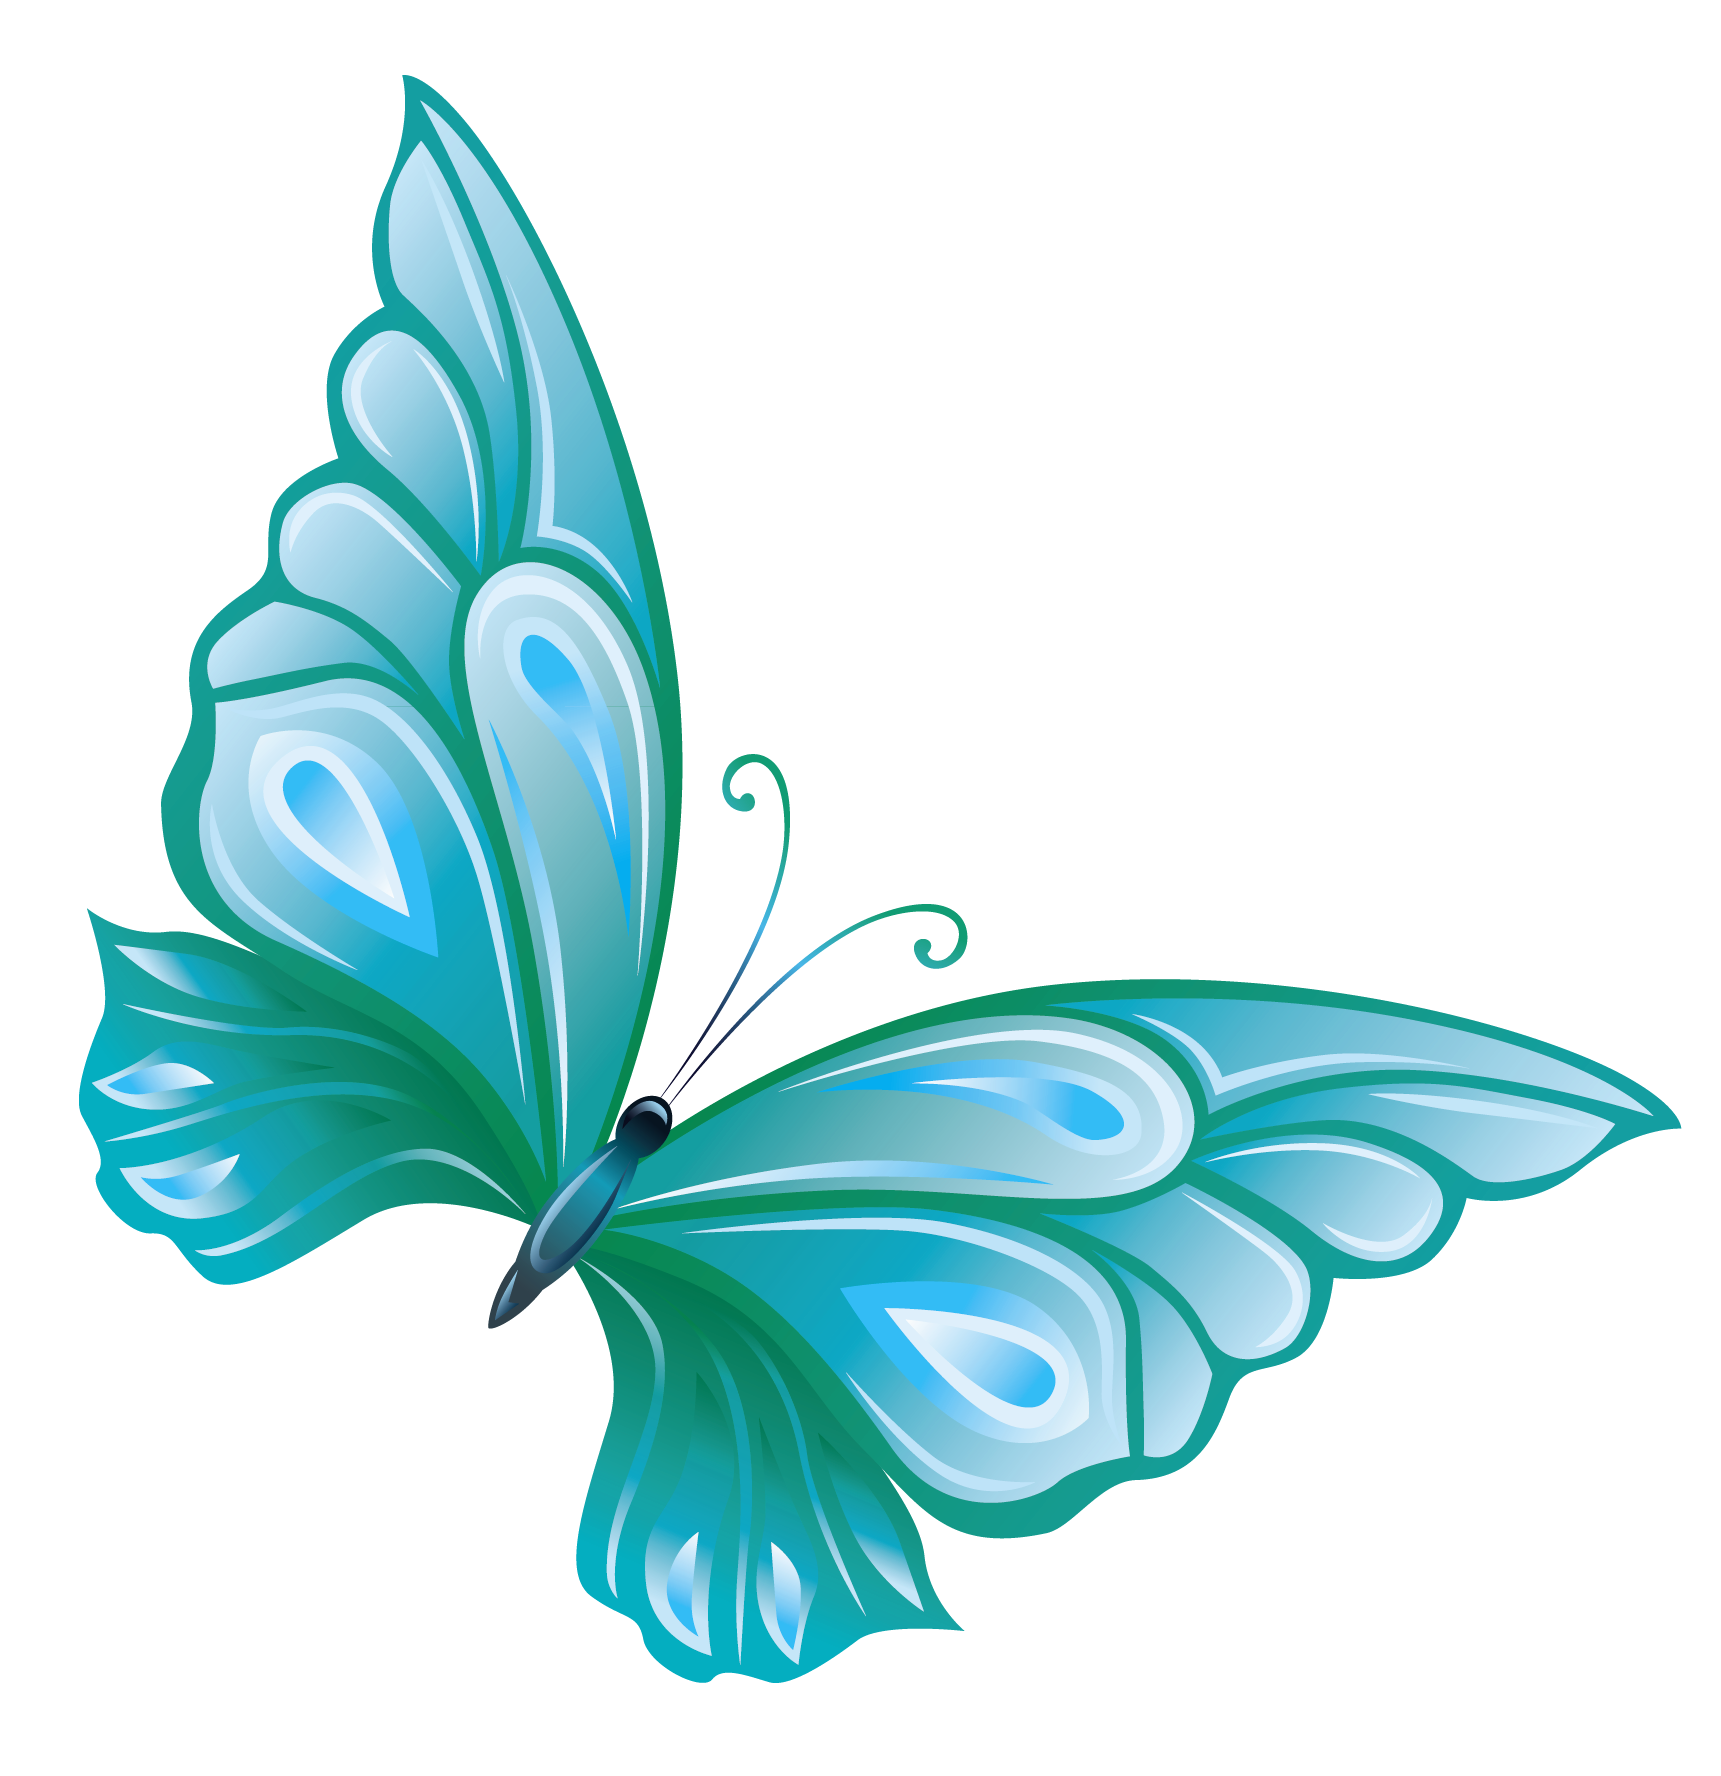 Butterfly clip art transparent background. Clipart library